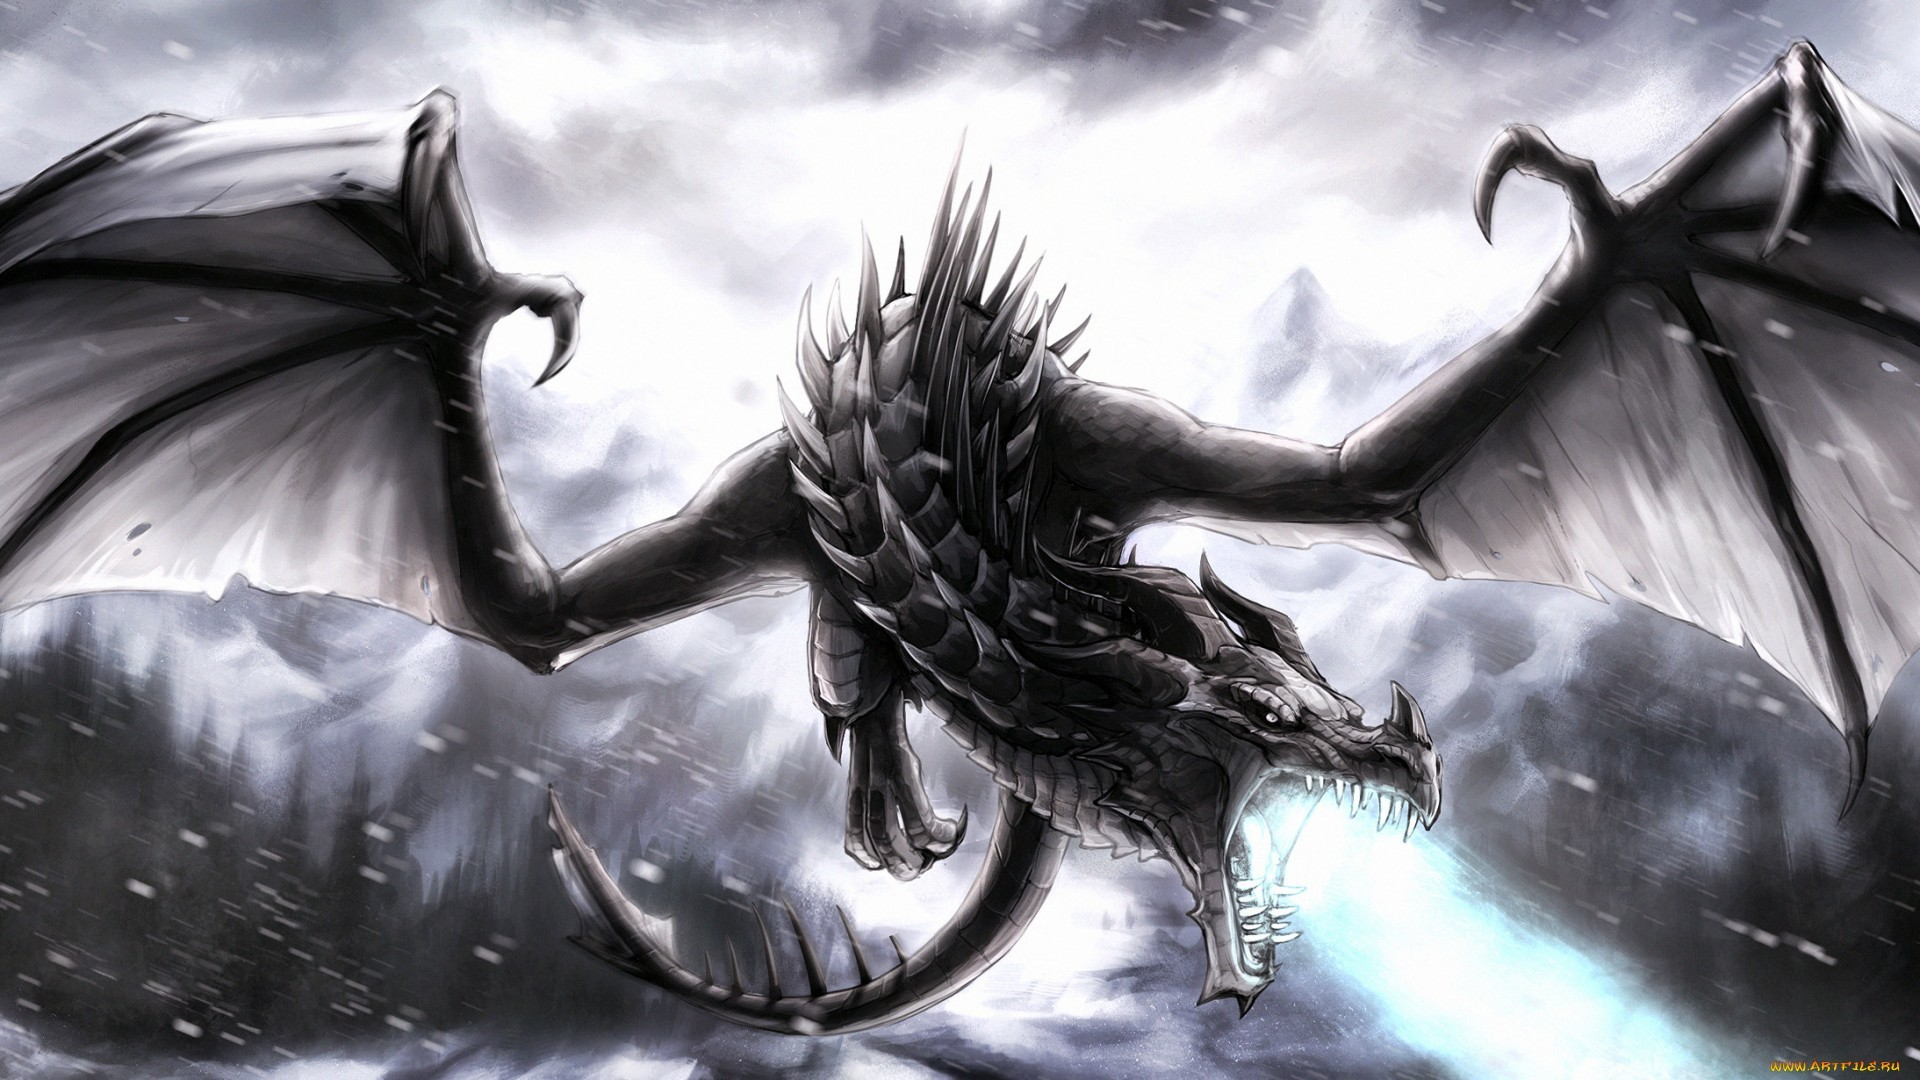 cool dragon backgrounds for computers that move – Google Search